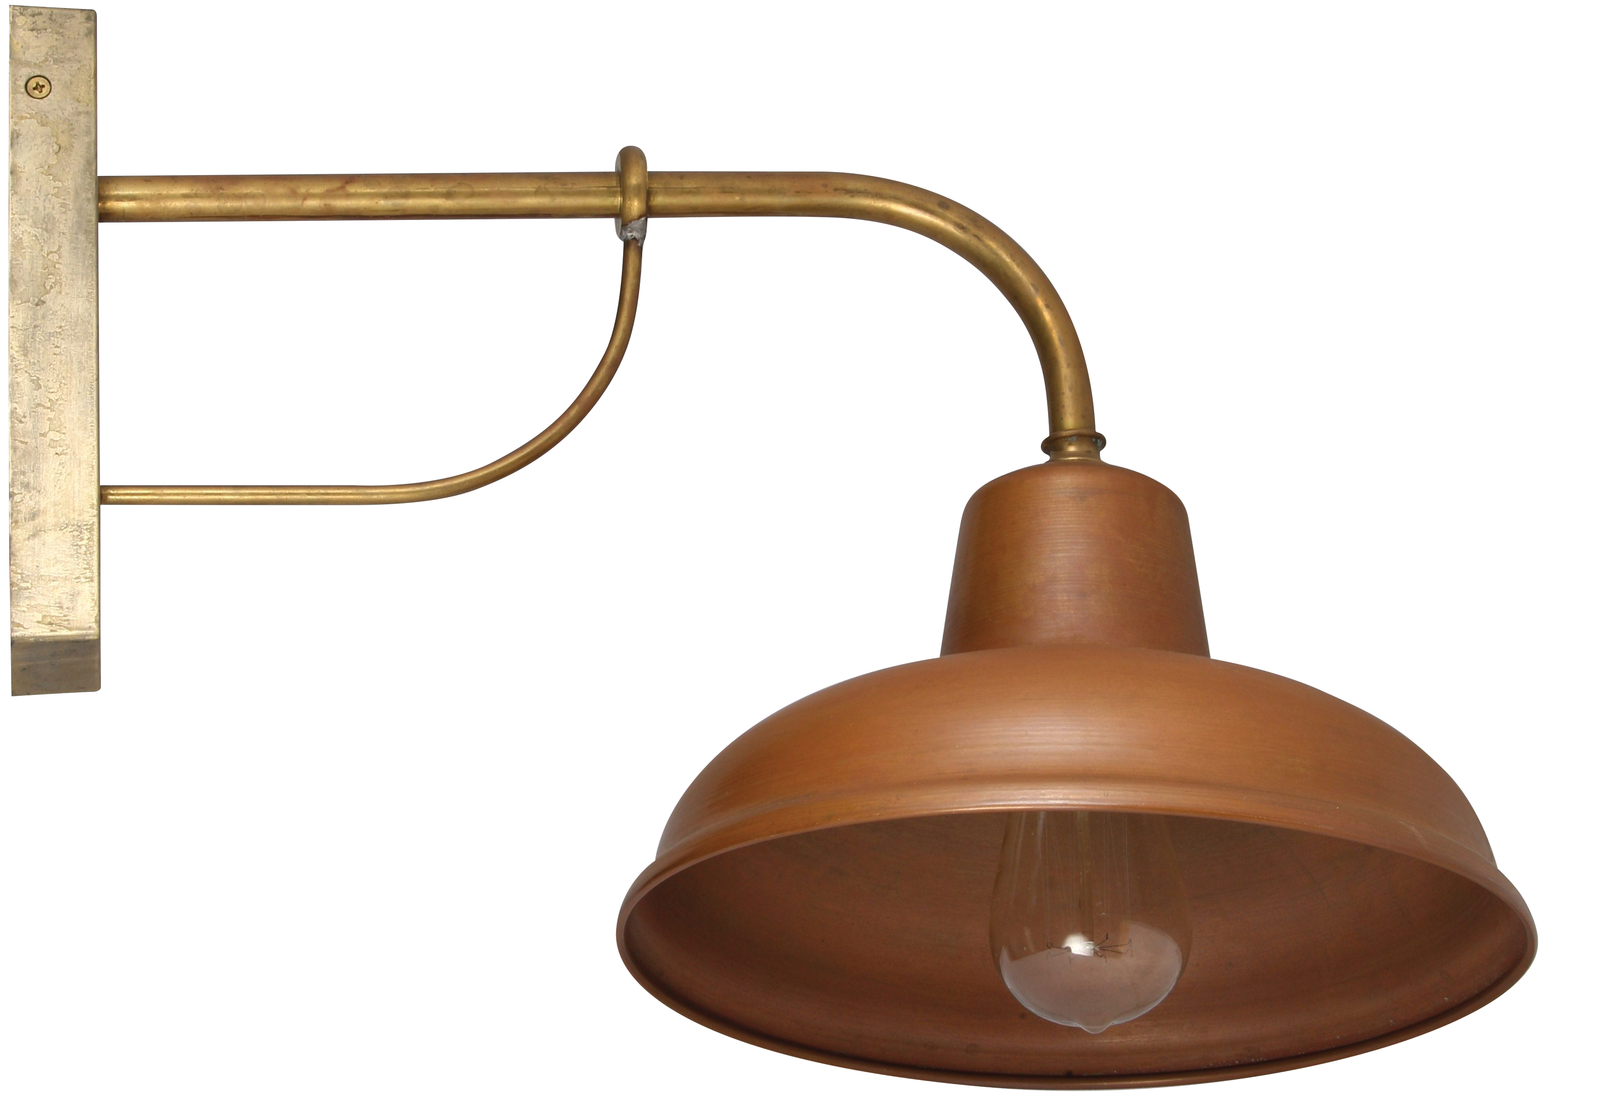 Copper and Brass Exterior Wall Light